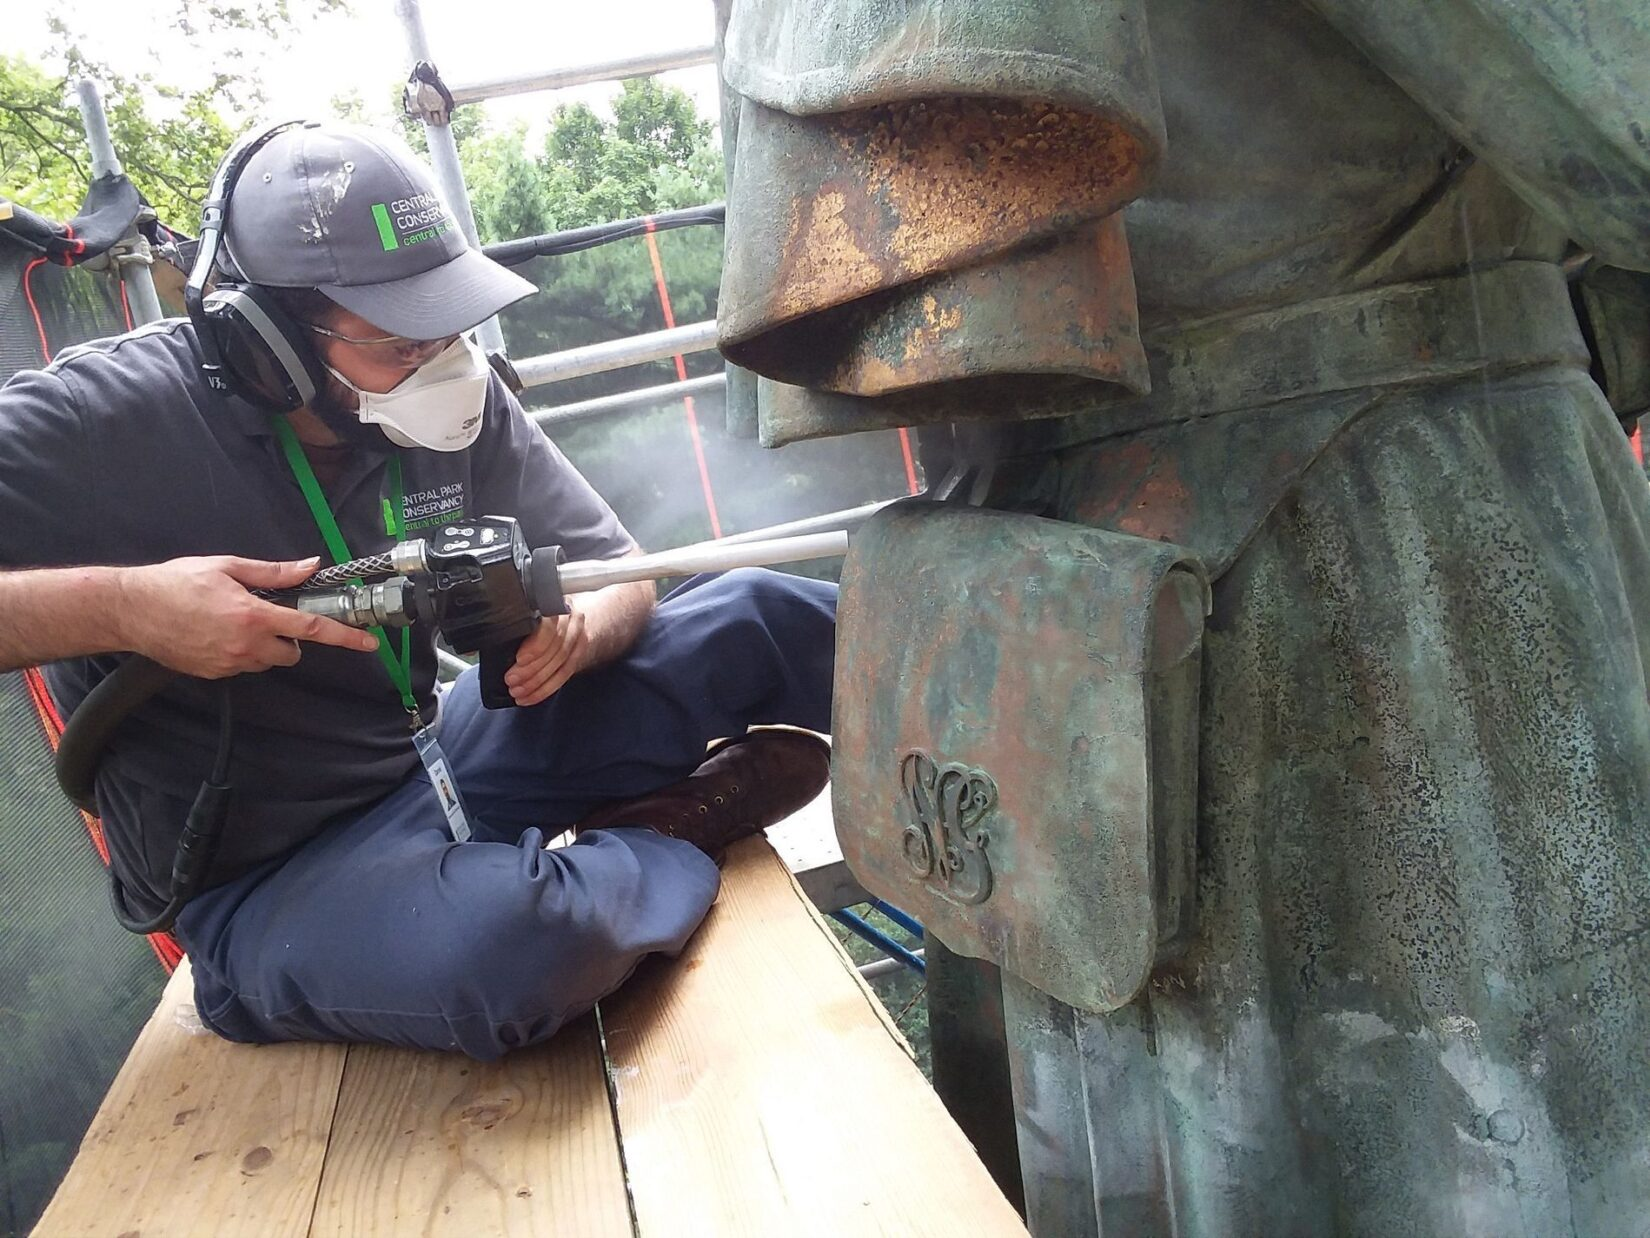 A worker power cleans the bronze statue.